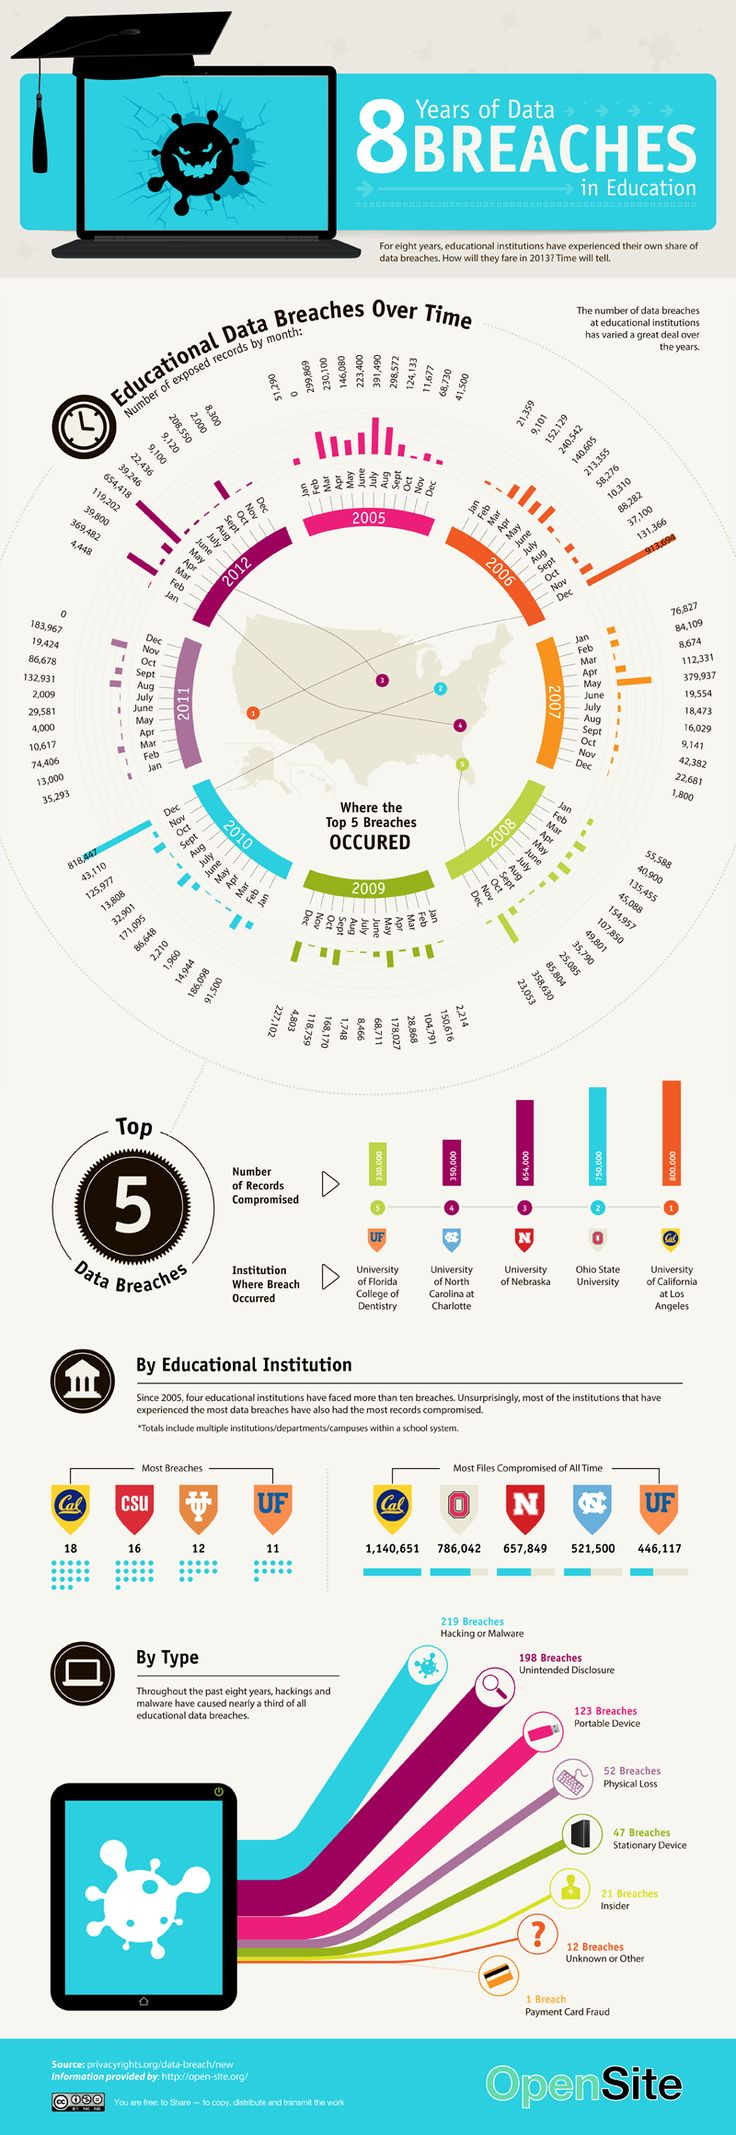 95 best Data Breaches images on Pinterest | Info graphics, Computer ...